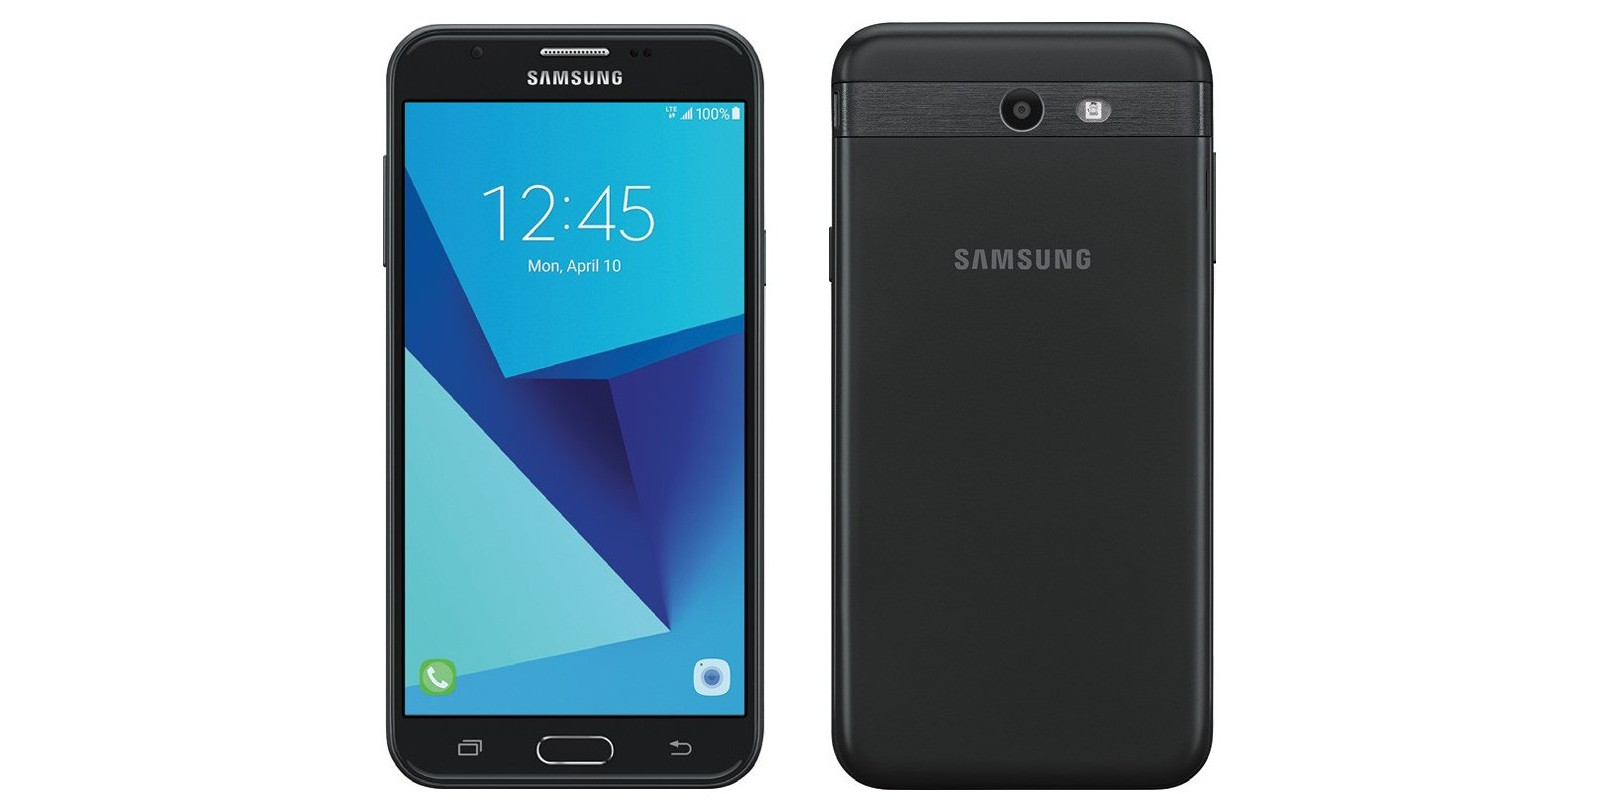 Samsung Galaxy J7 V Coming Soon to Verizon, Tracfone Will Get It as